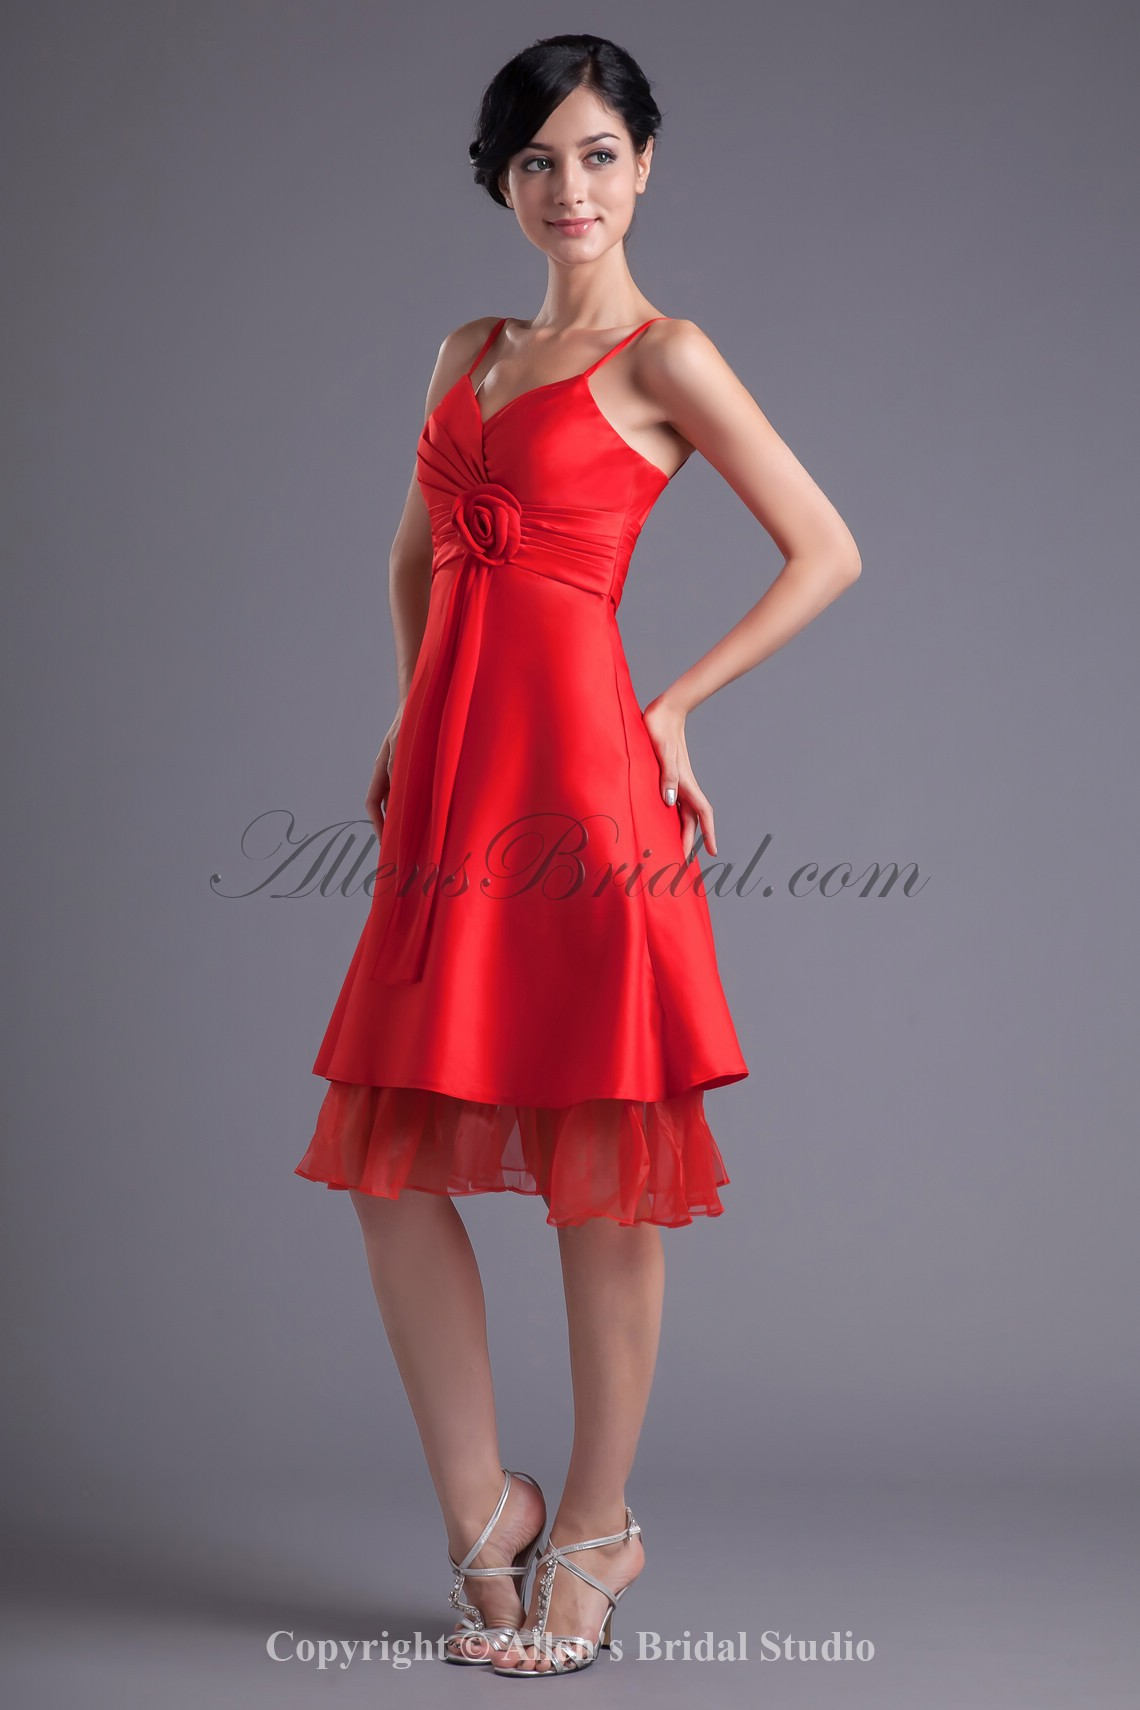 /38-299/satin-and-organza-spaghetti-neckline-a-line-knee-length-flower-cocktail-dress.jpg